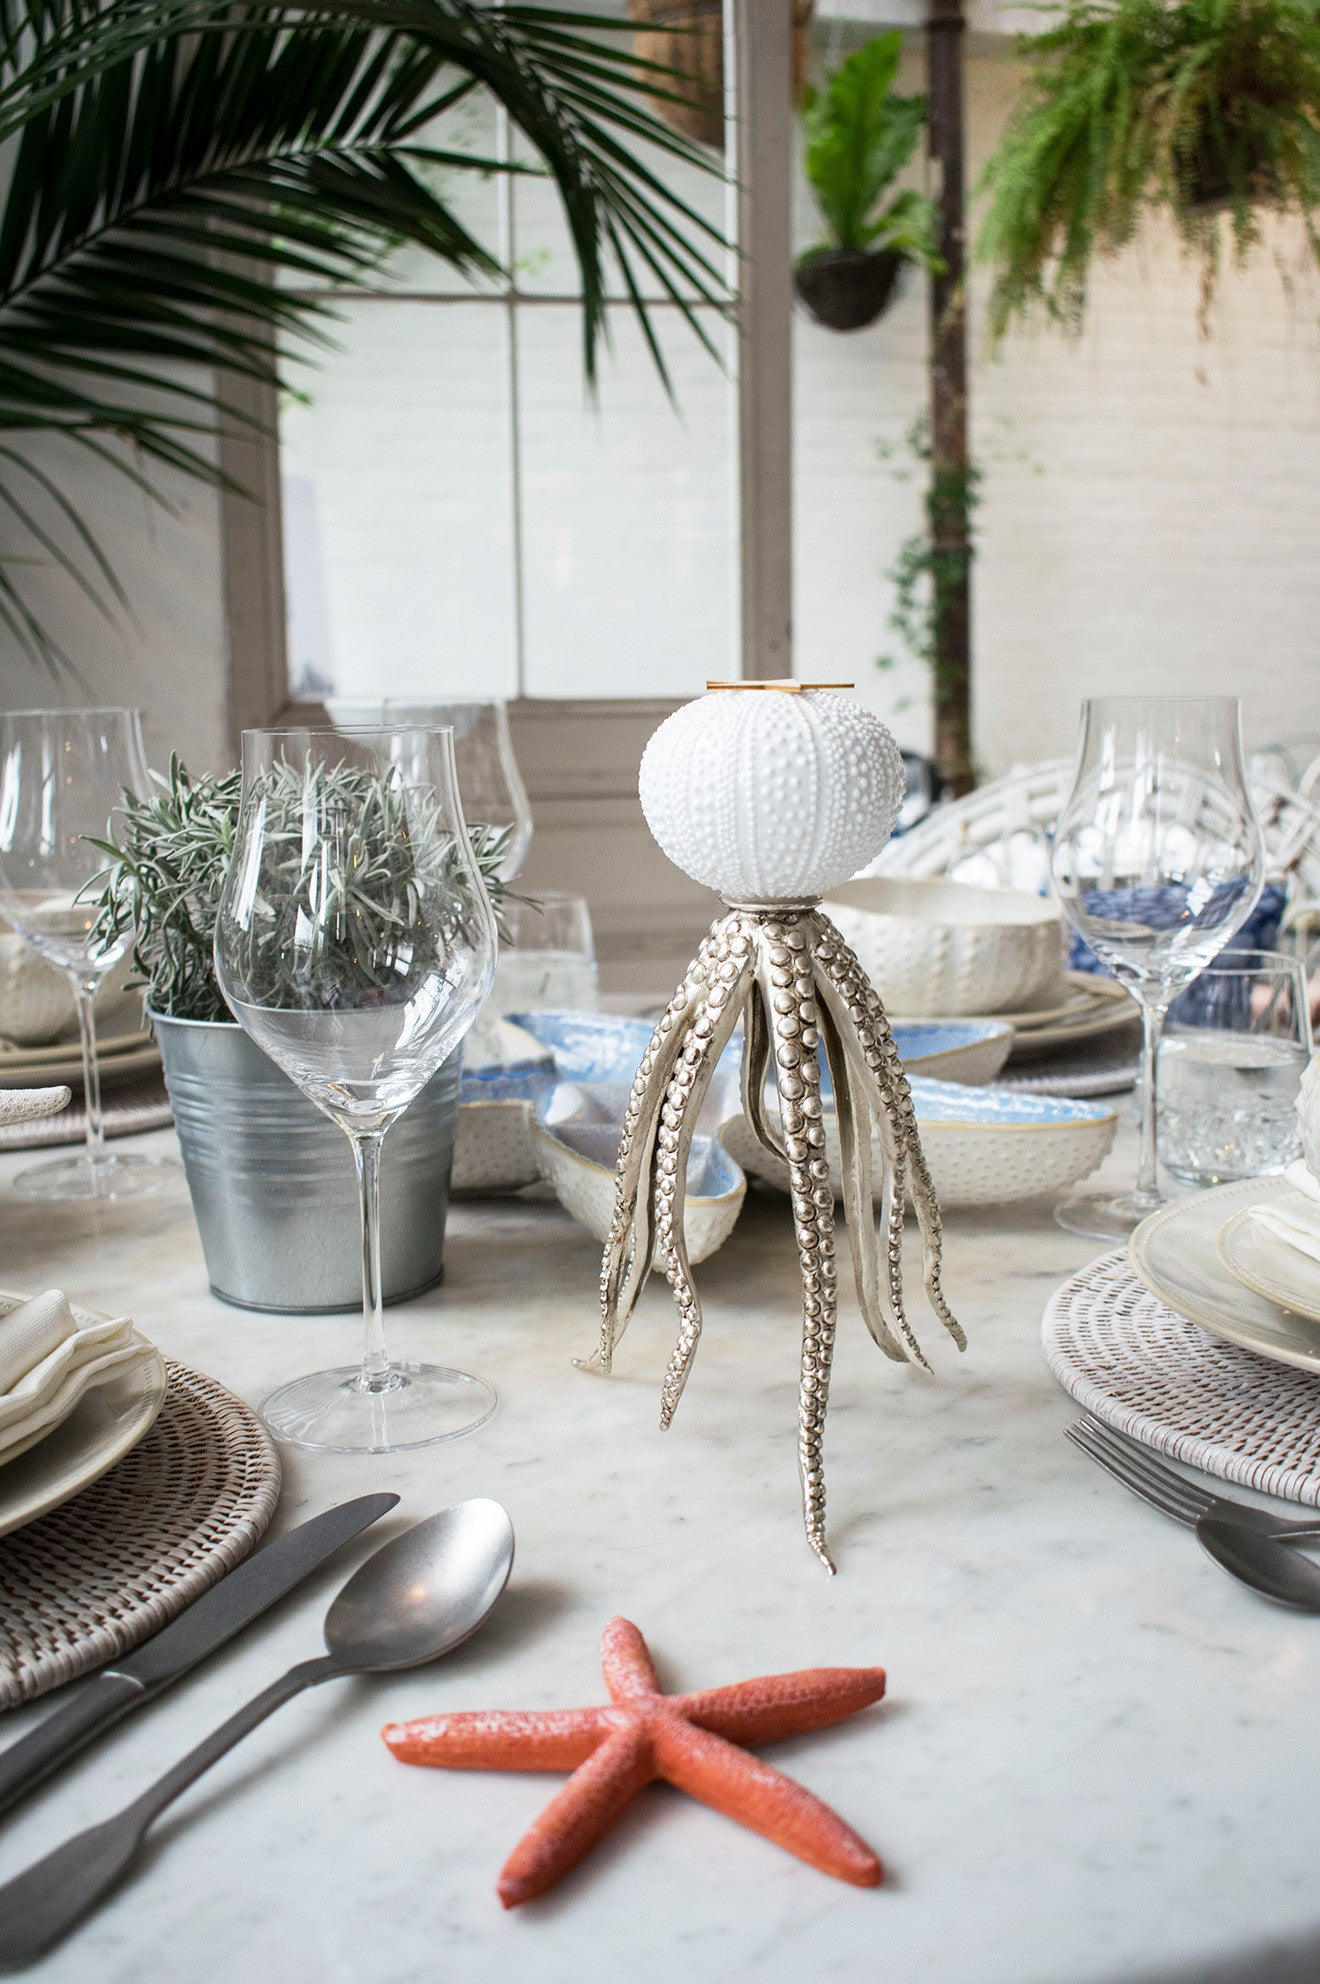 Amara own label maritime beach side home collection with urchin style candle holder